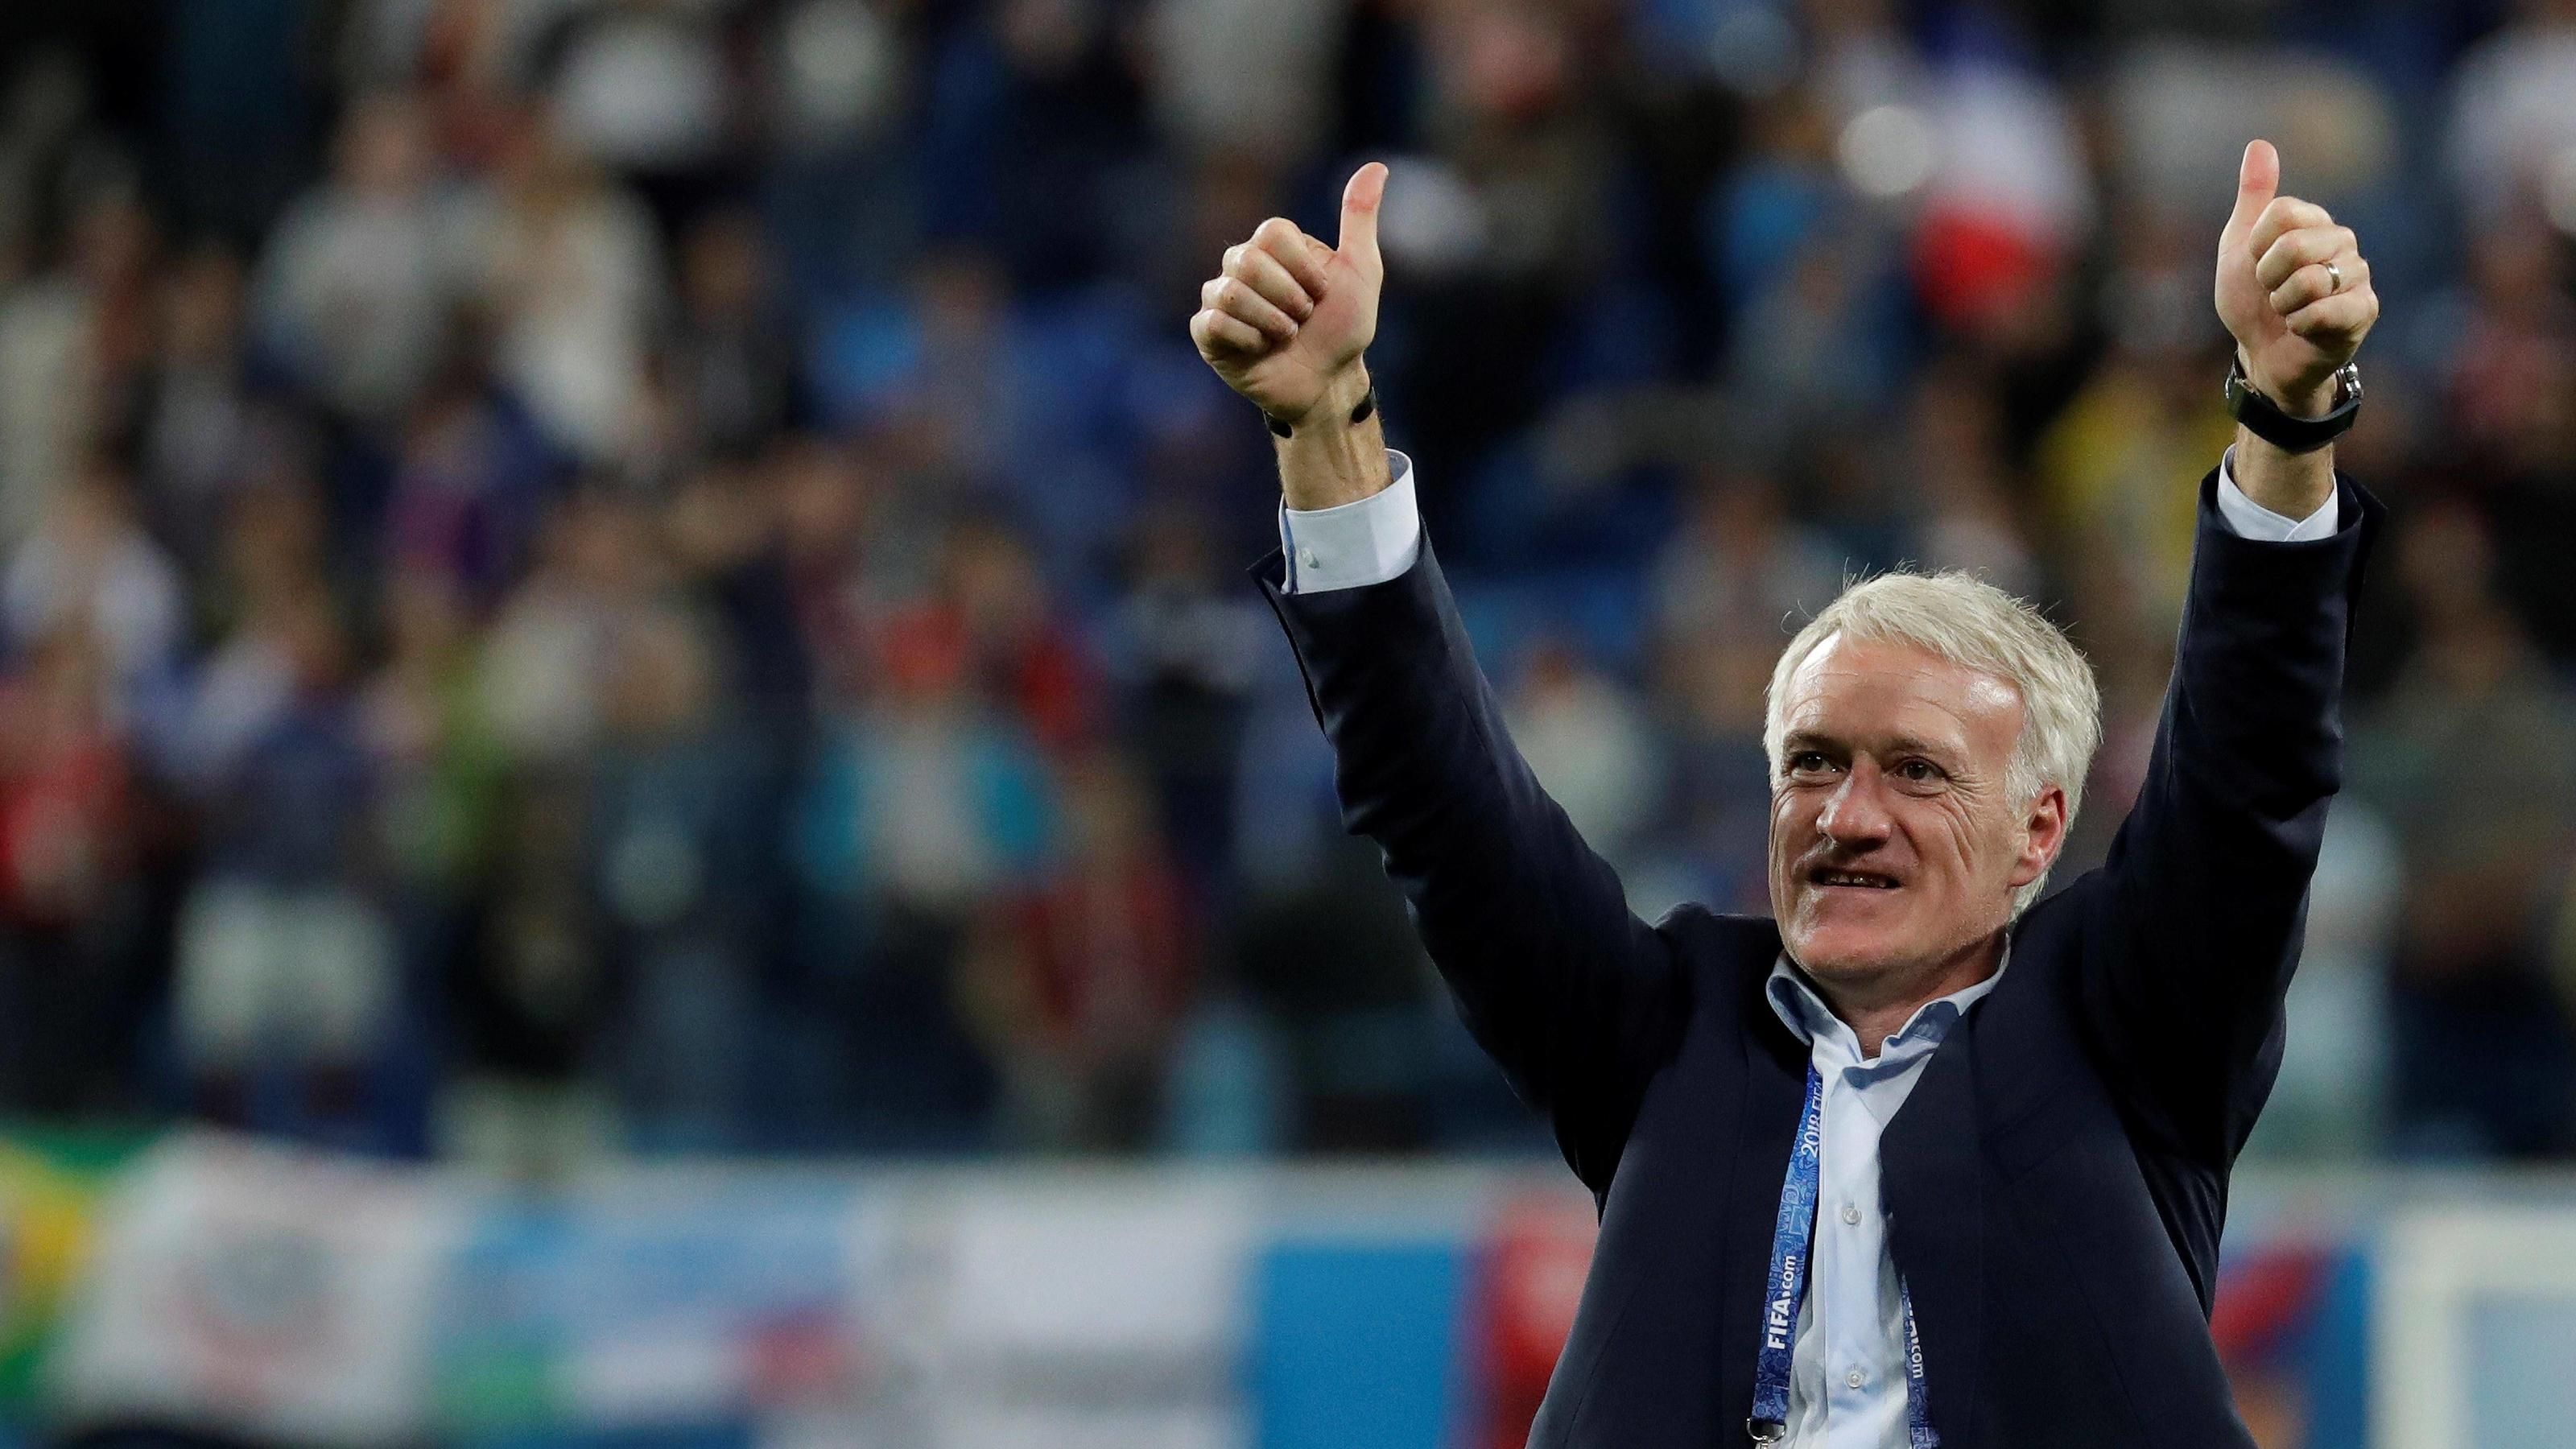 French coach Didier Deschamps celebrates at the end of the FIFA World Cup WM Weltmeisterschaft Fussball 2018 semi-finals soccer match between France and Belgium, at Saint Petersburg Stadium, Russia, 10 July 2018. FRANCE VS. BELGIUM !ACHTUNG: NUR REDA